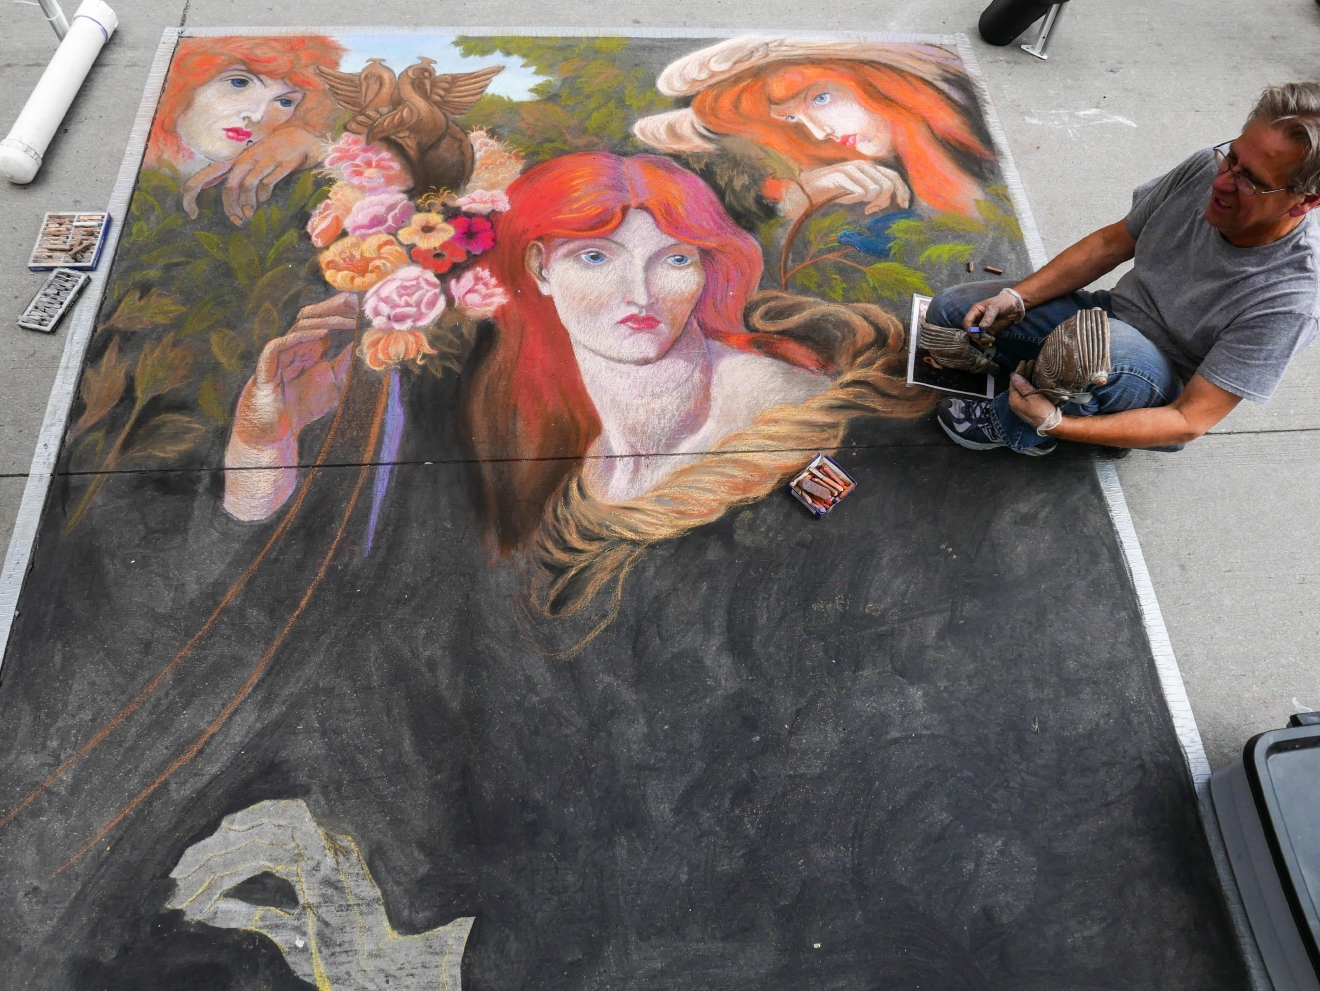 The Reno Chalk Art Festival is being held on Saturday, July 9, and Sunday, July 10, 2016. (Photo courtesy: Michael Rieger)